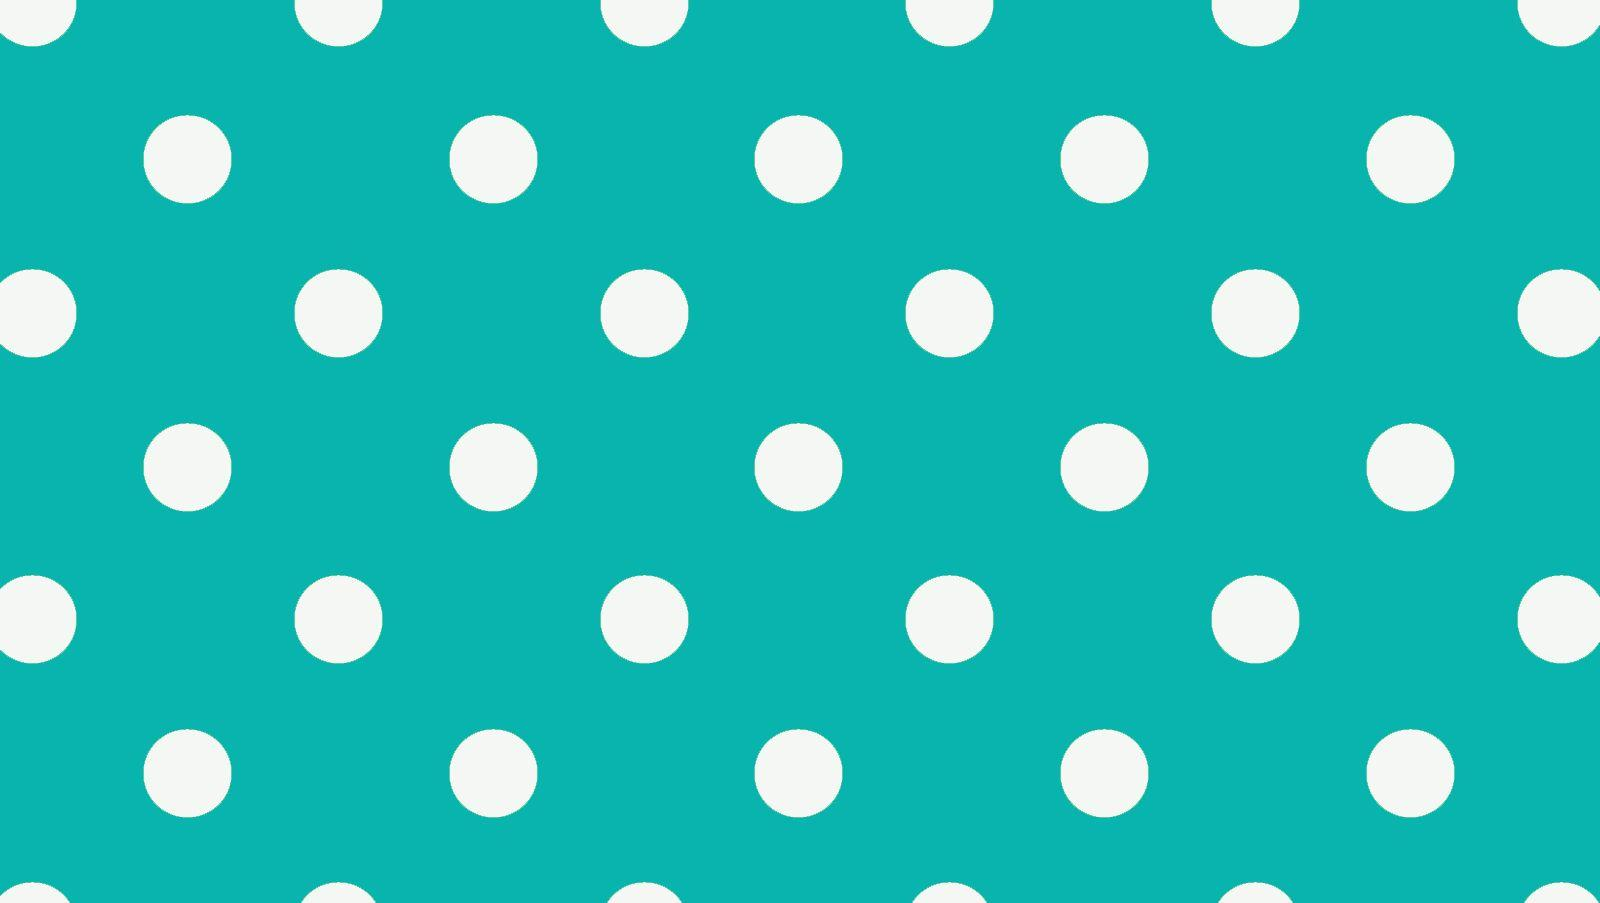 Facts About Dots Wallpaper